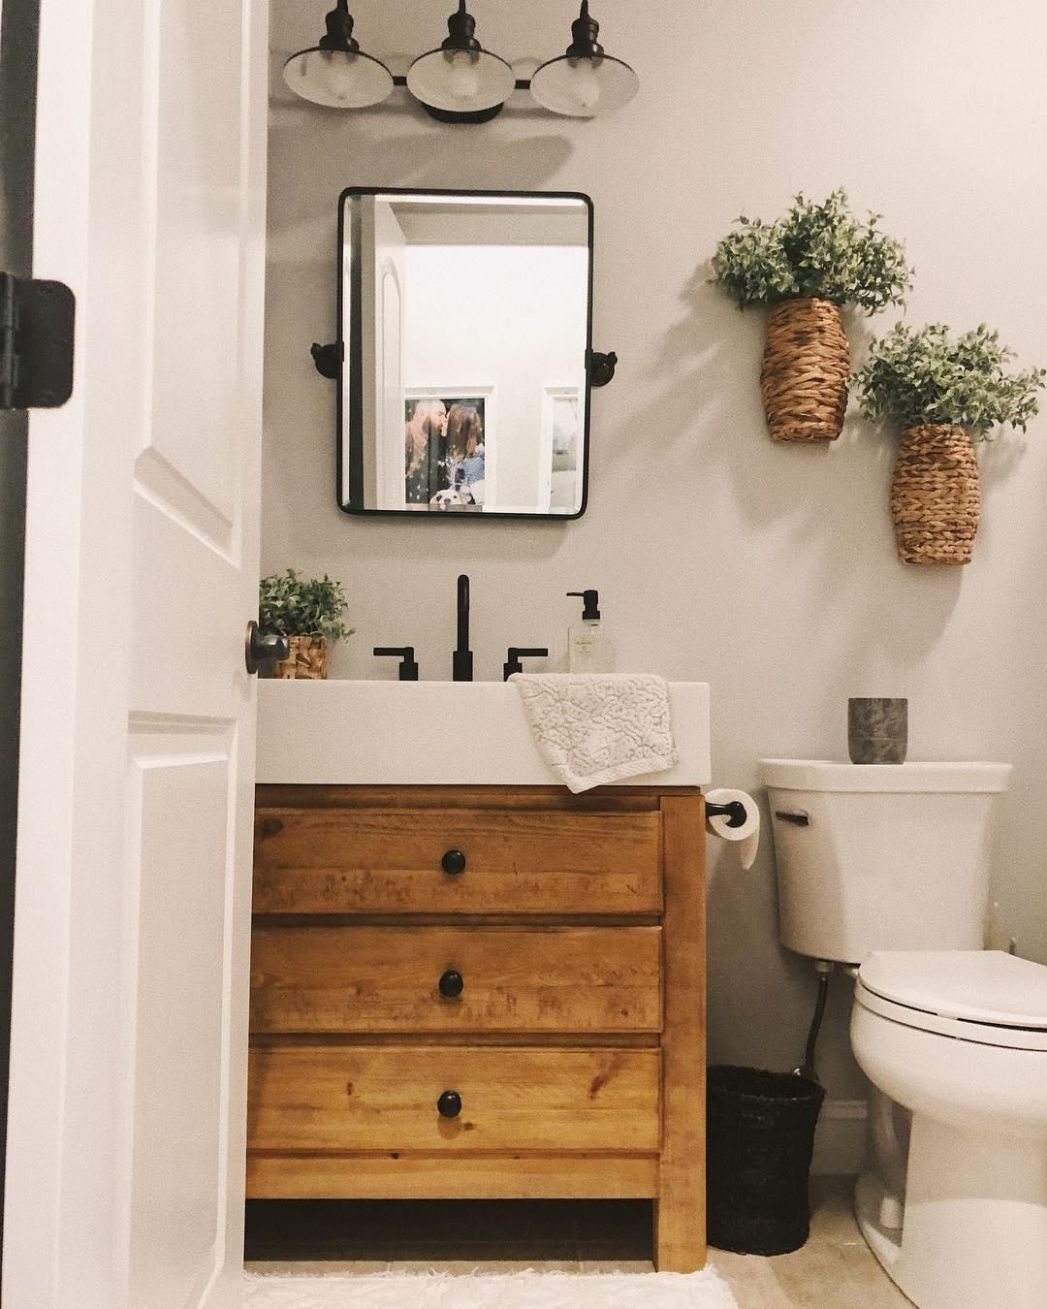 9 Small Bathroom Design Ideas to the Big Room Statement | Small ..